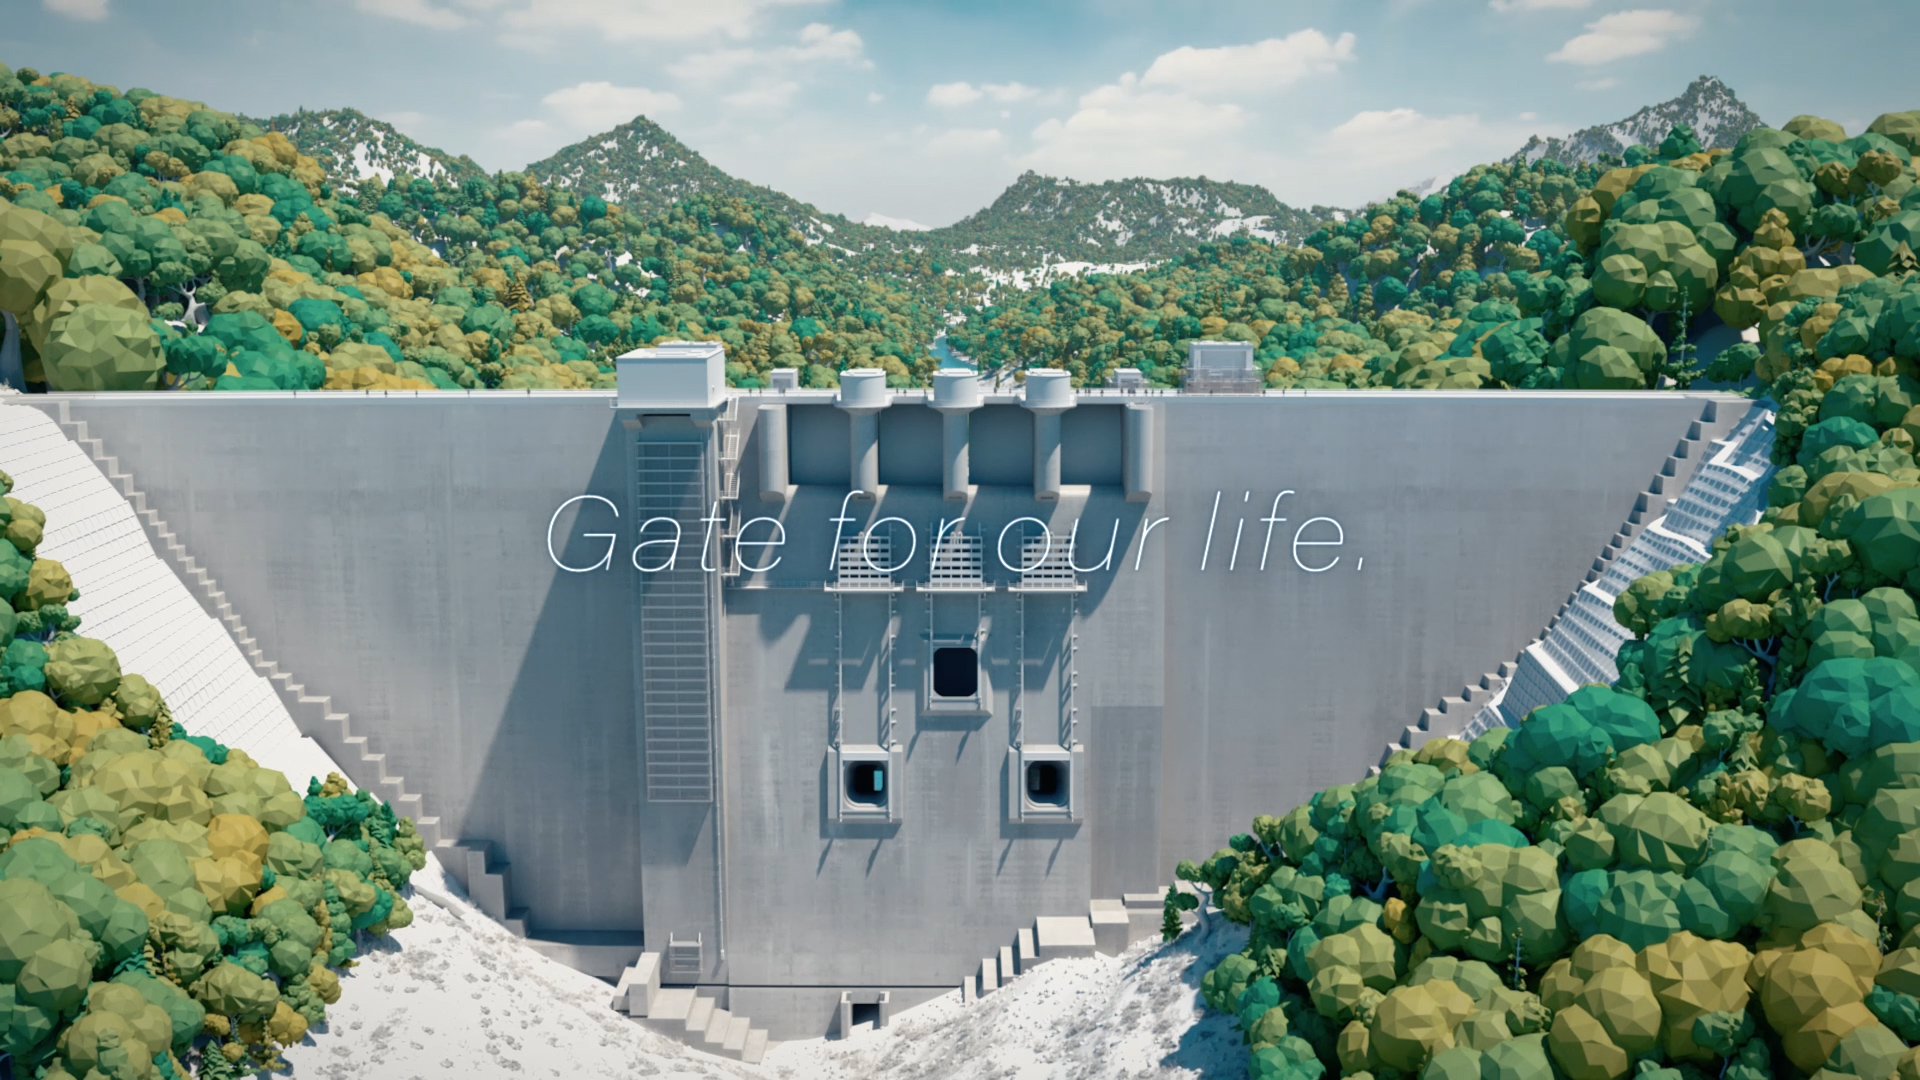 IHI 八ッ場ダム完成記念 放流ゲート動画「Gate for our life」